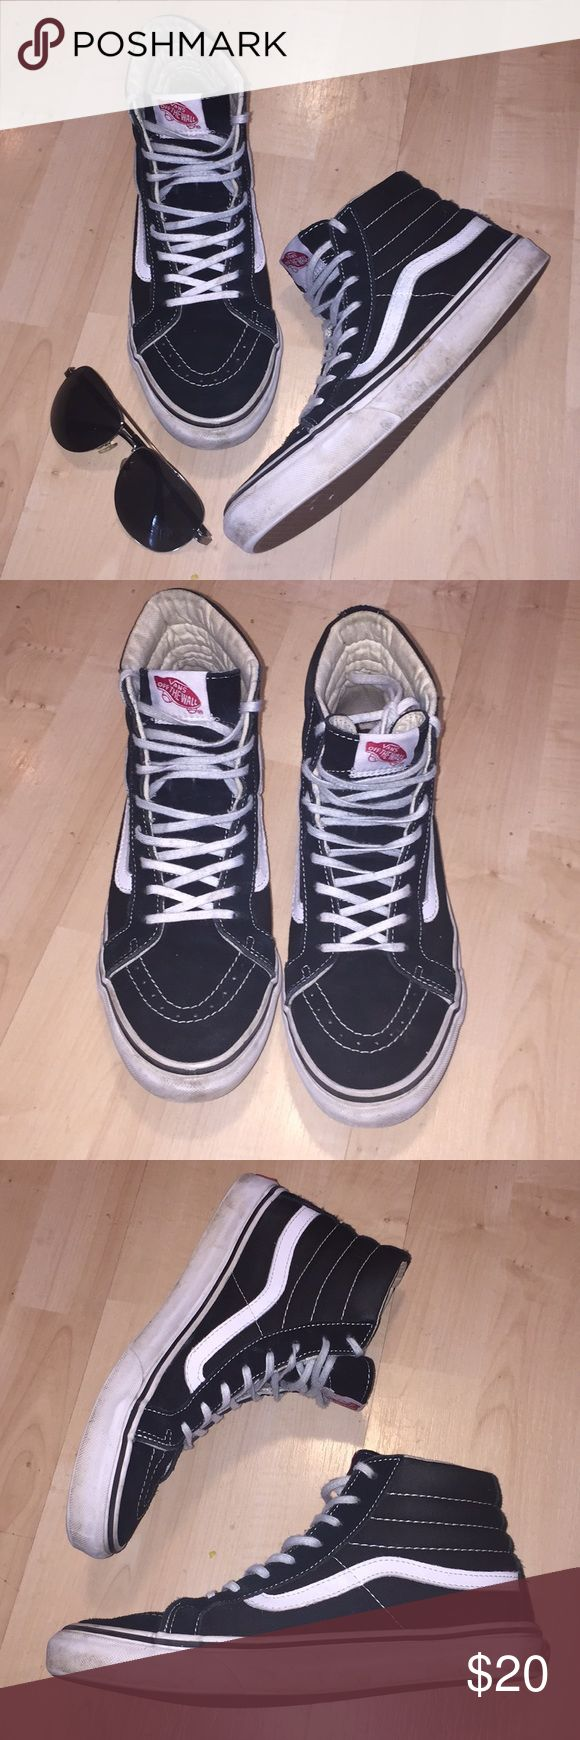 Vans High tops Super cute black Suede and canvas high tops. White walls have a few scuffs, but shoes and soles look great! Men's size 7, ladies size 8.5. Vans Shoes Sneakers